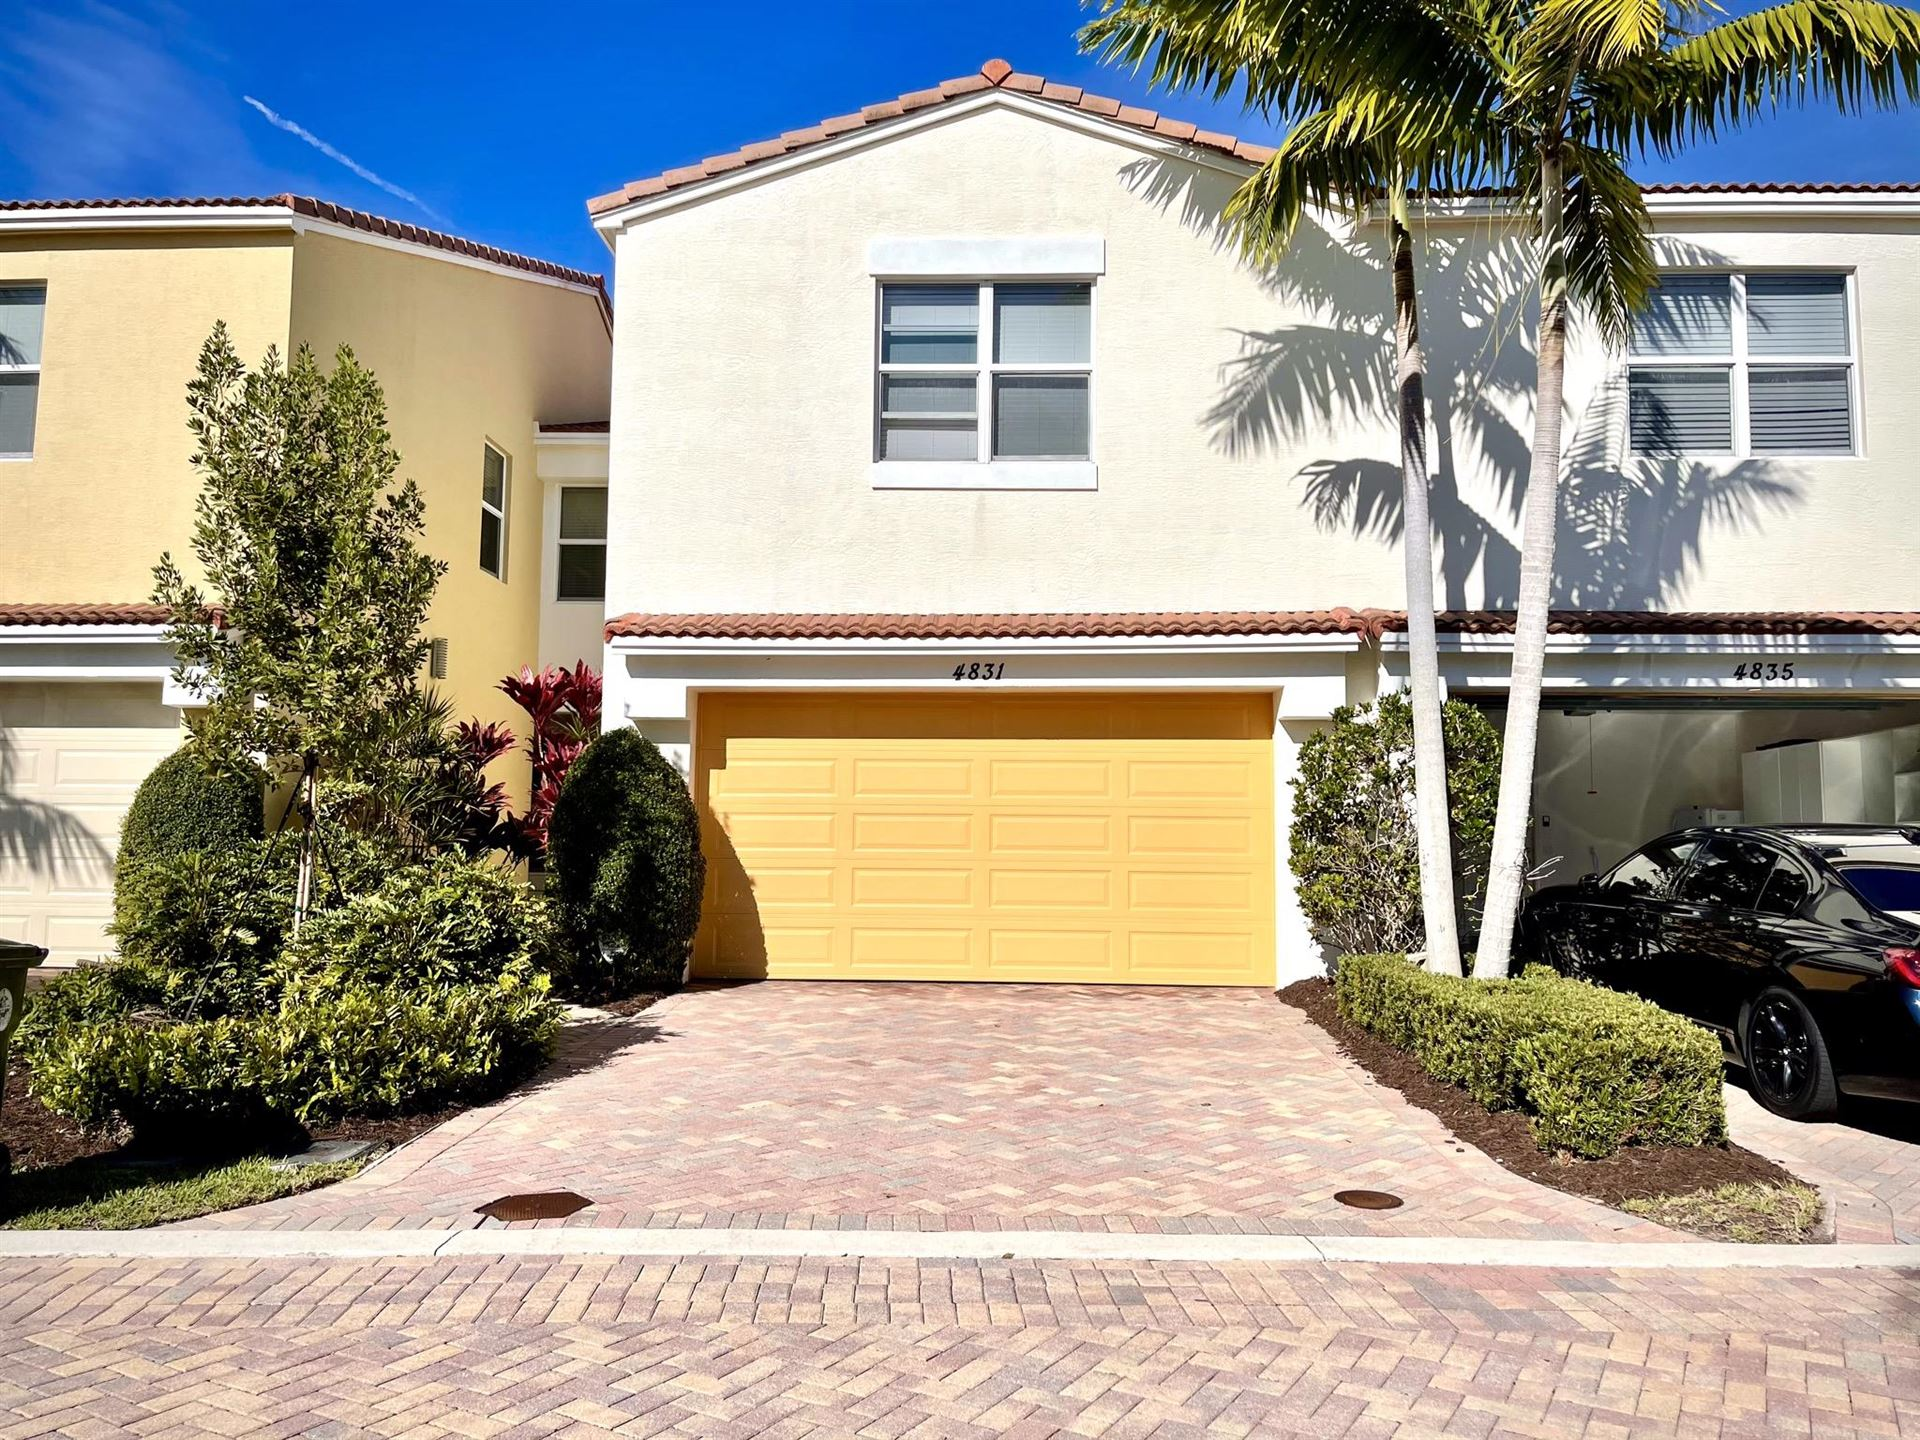 4831 NW 16th Terrace, Boca Raton, FL 33431 - #: RX-10662349